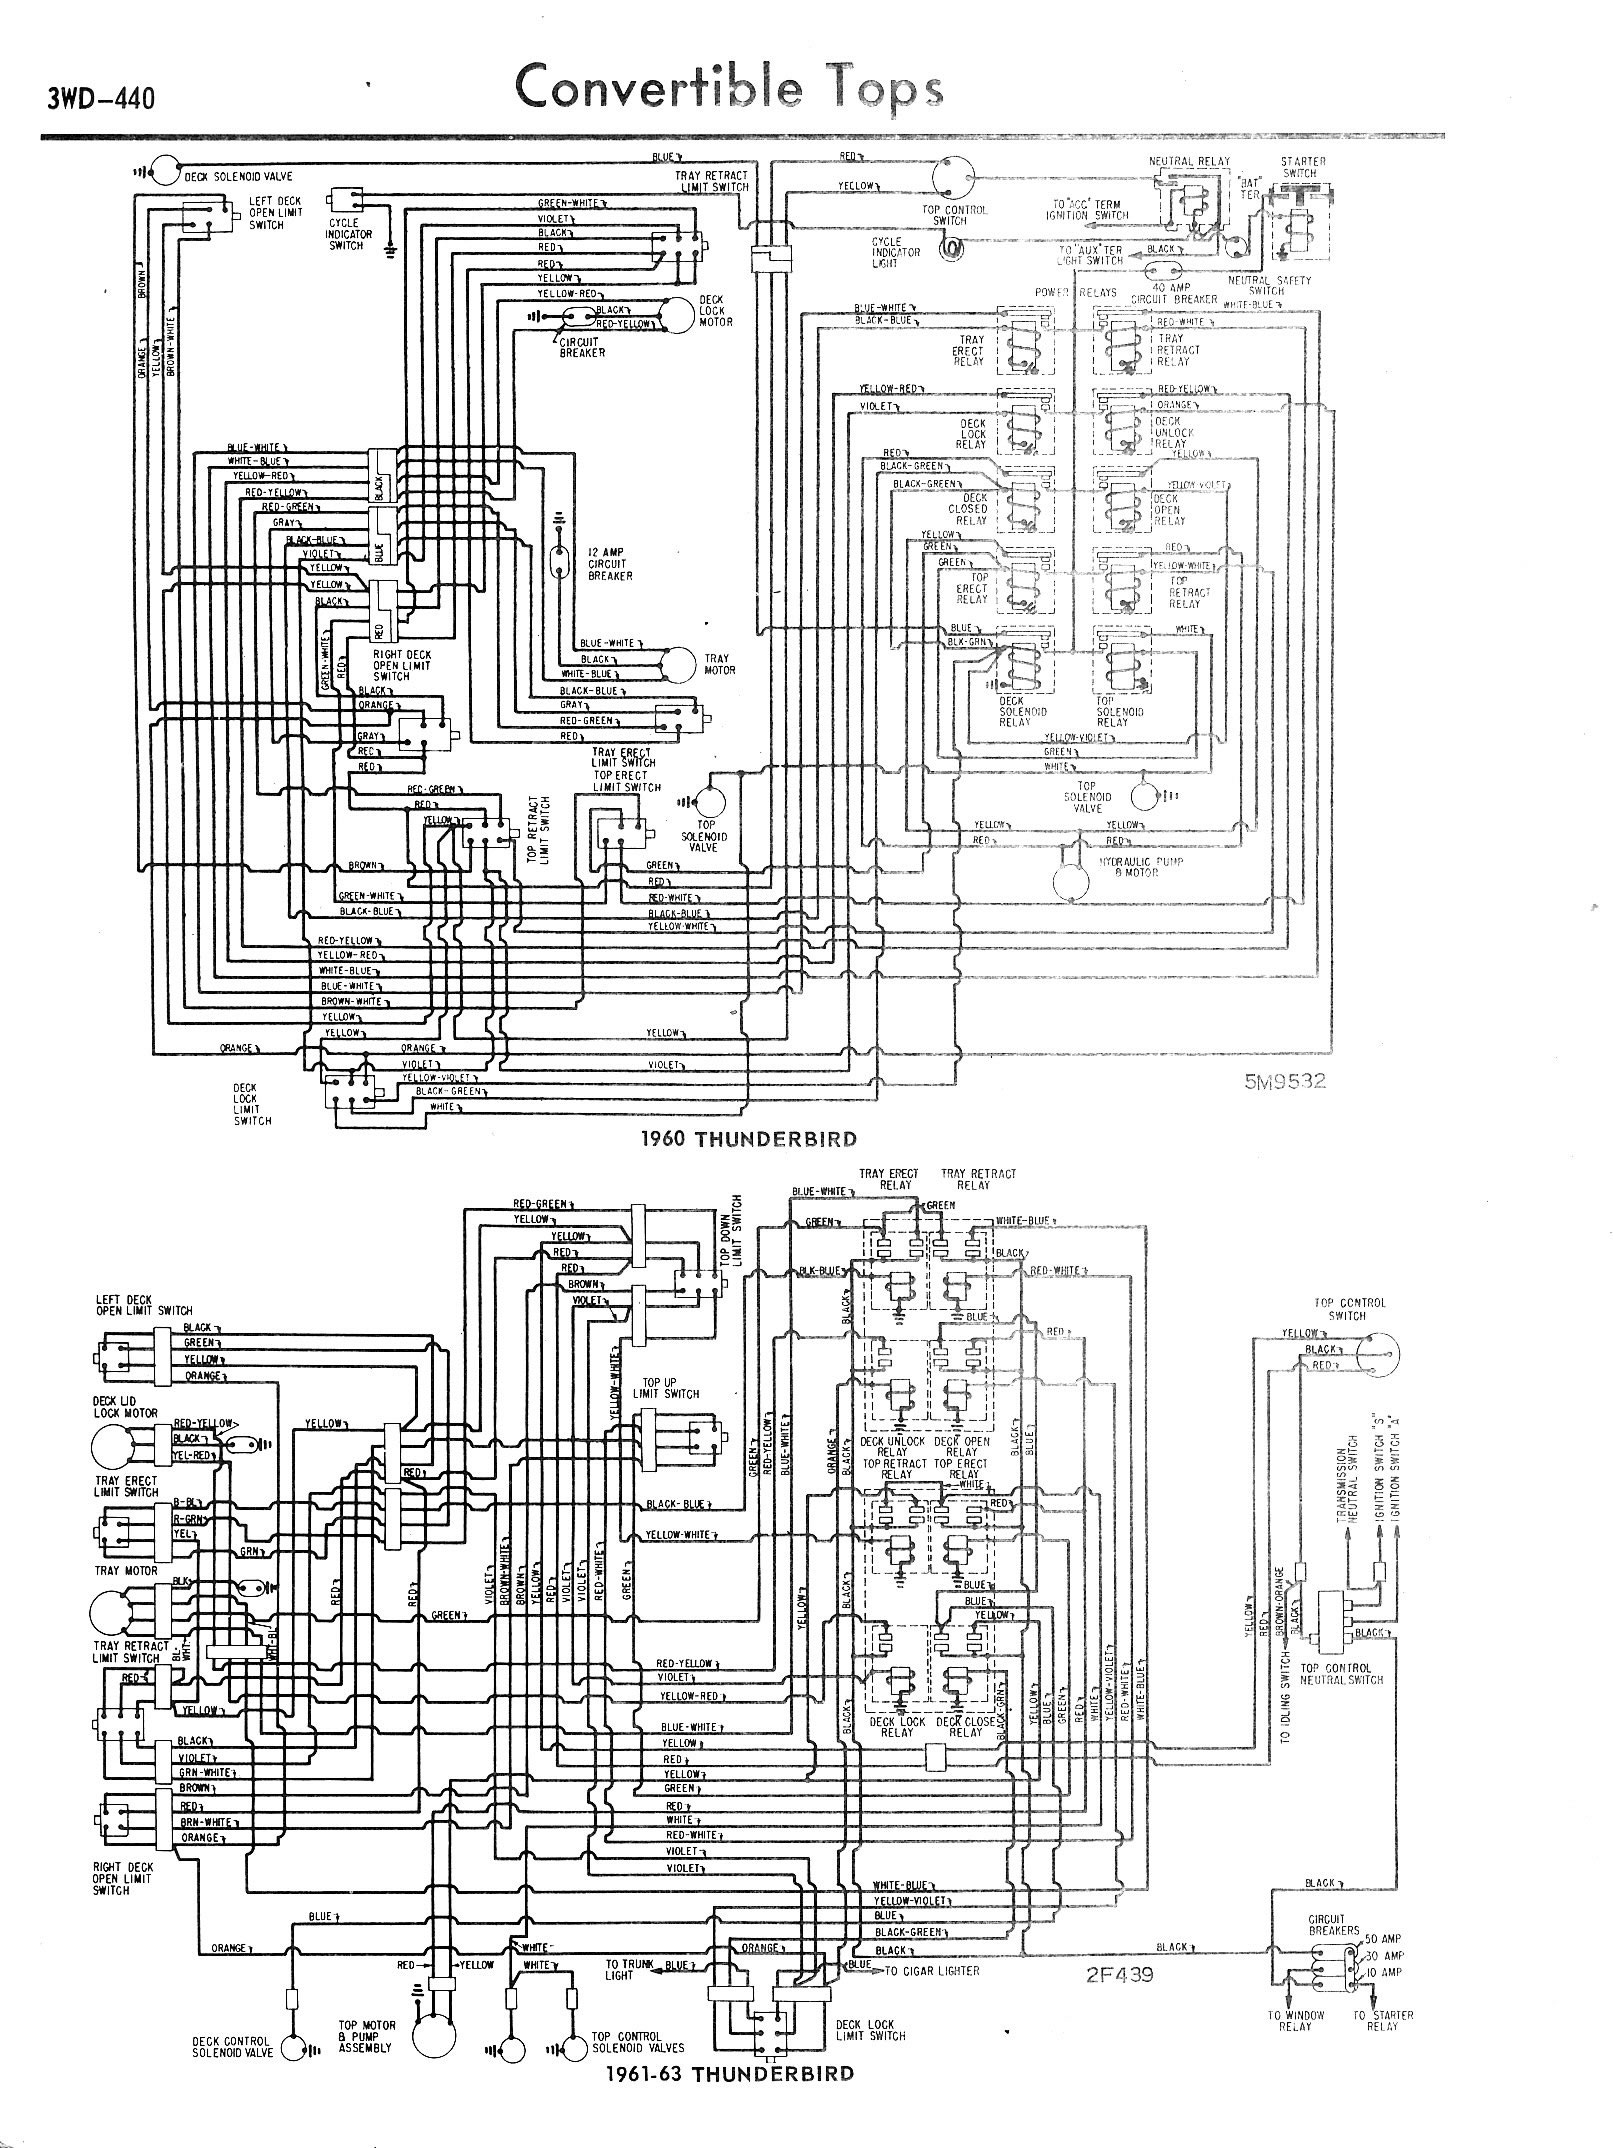 63 Thunderbird Voltage Regulator Wiring Diagram Reinvent Your 6 Volt Autolite Generator Ford Diagrams Rh Wizard Com Schematic Circuit